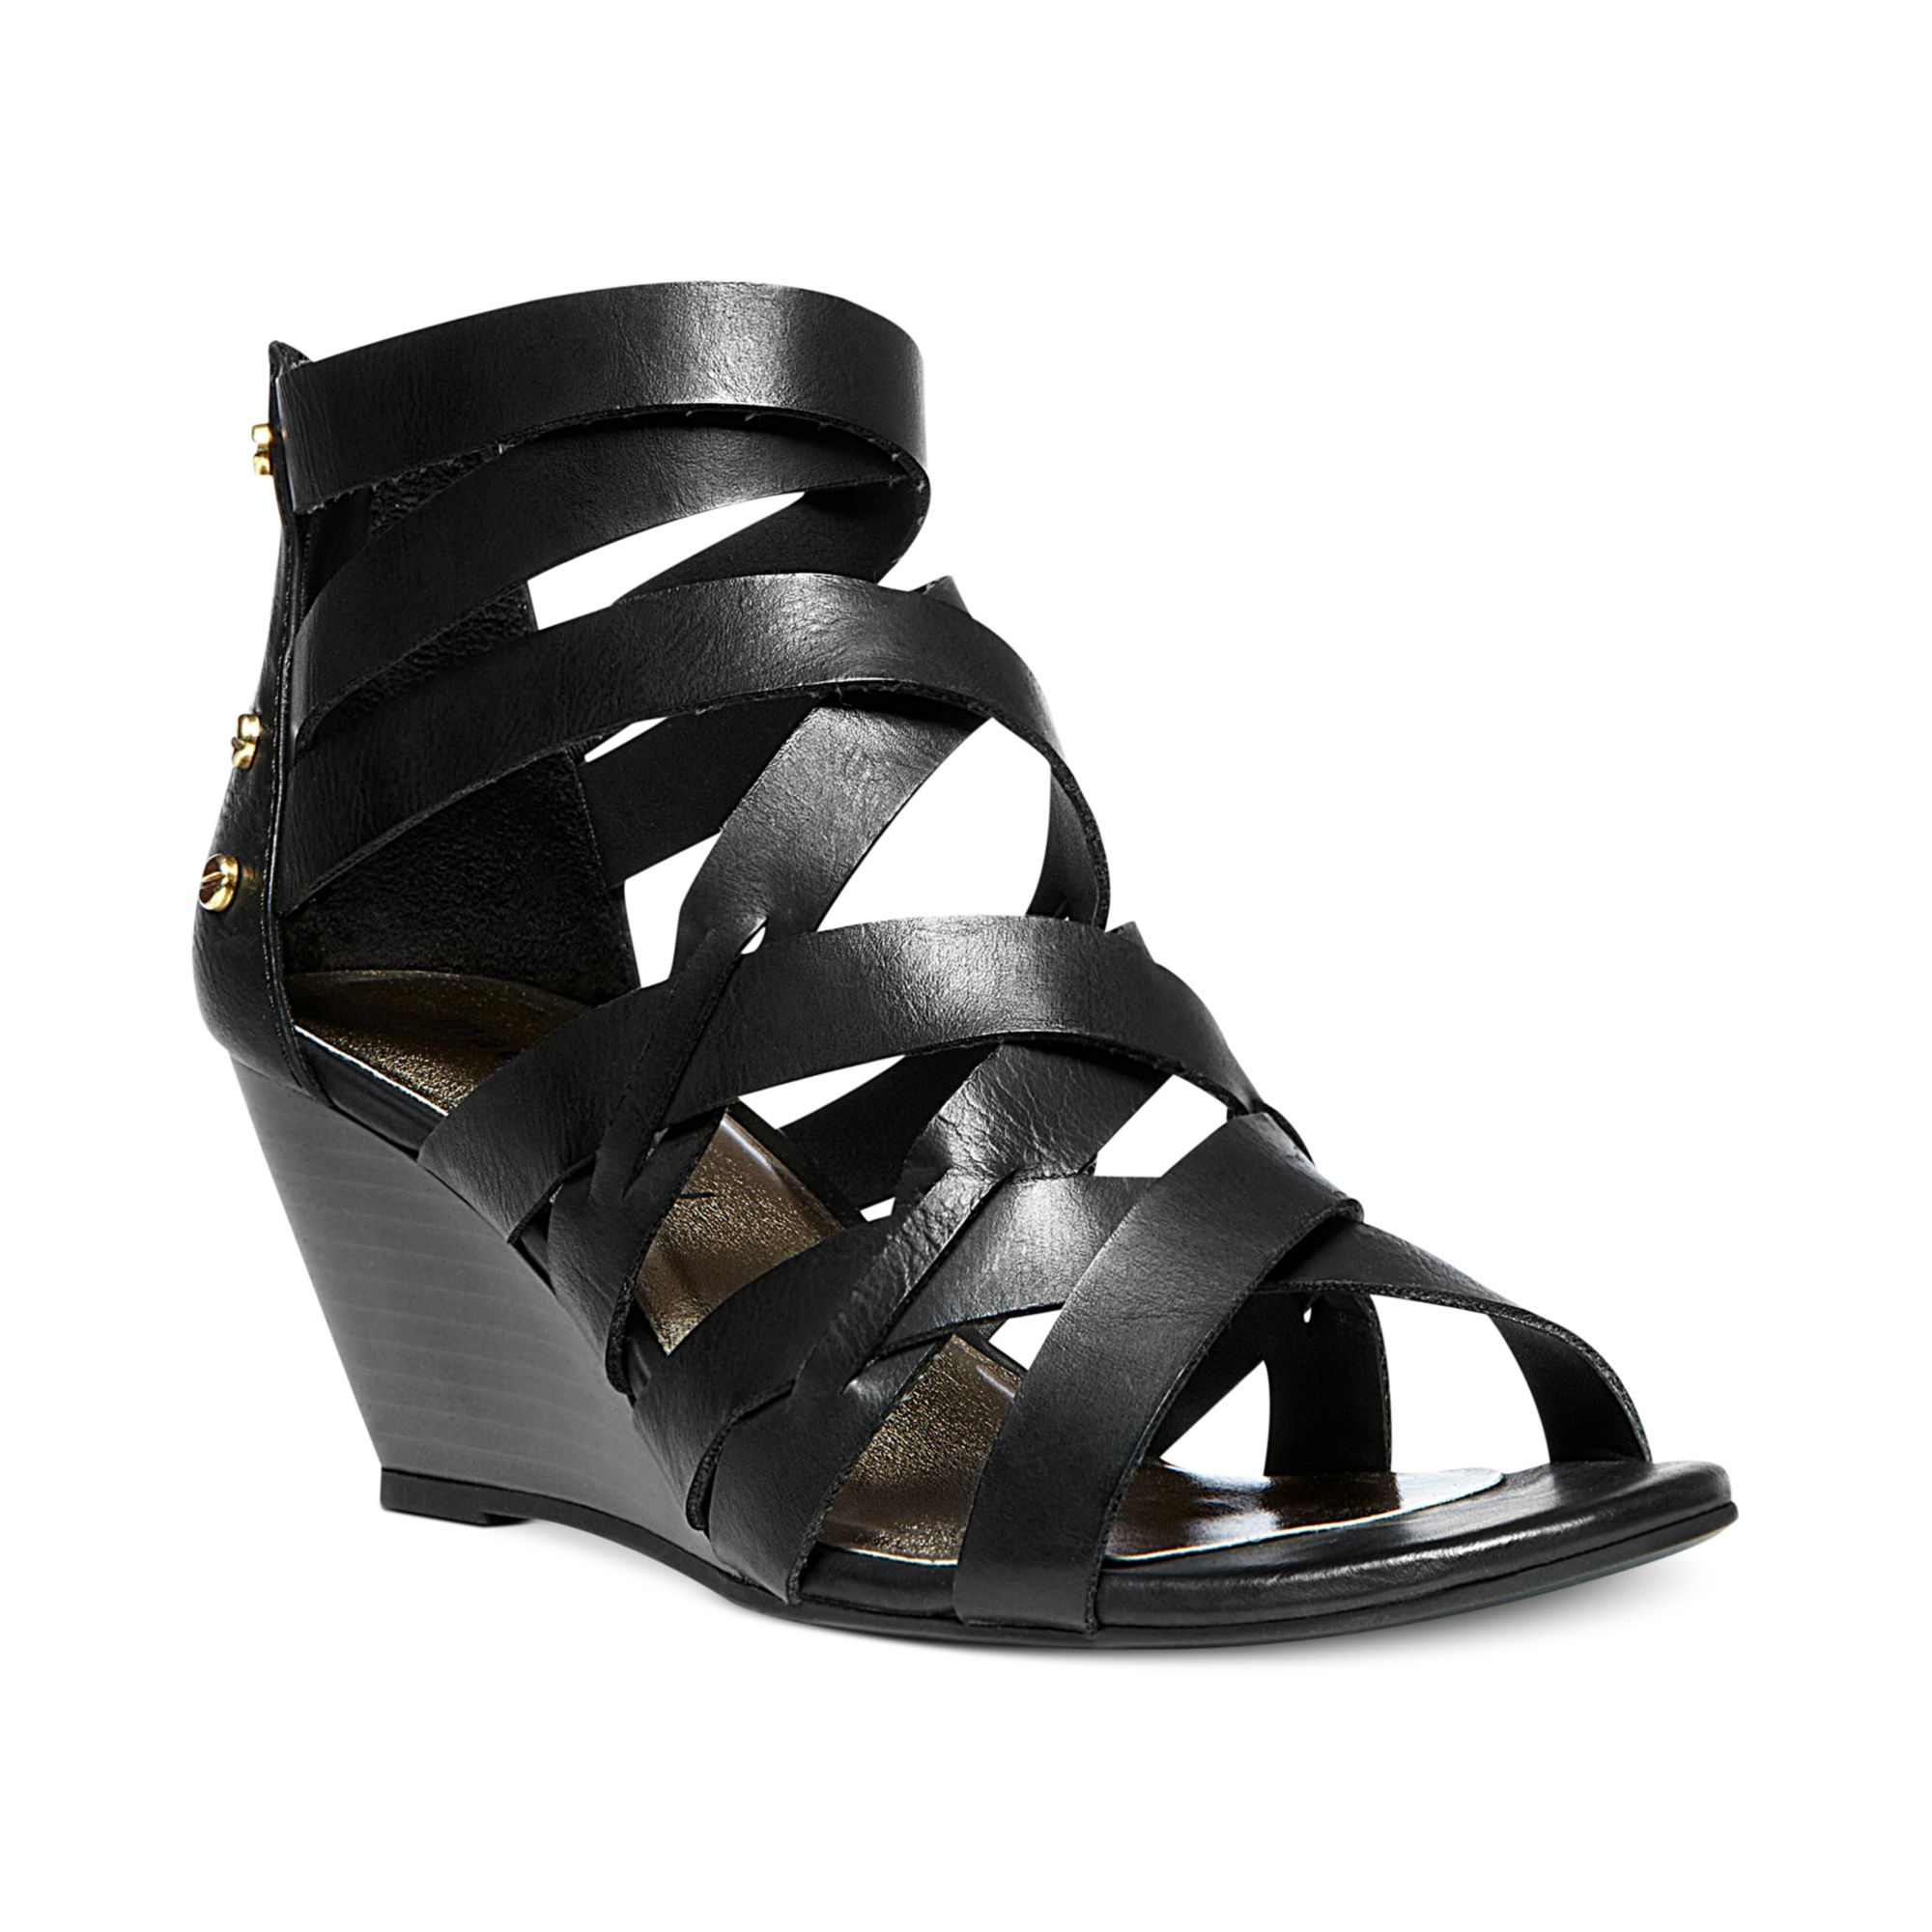 Madden Girl Hiighfiv Wedge Sandals in Black | Lyst